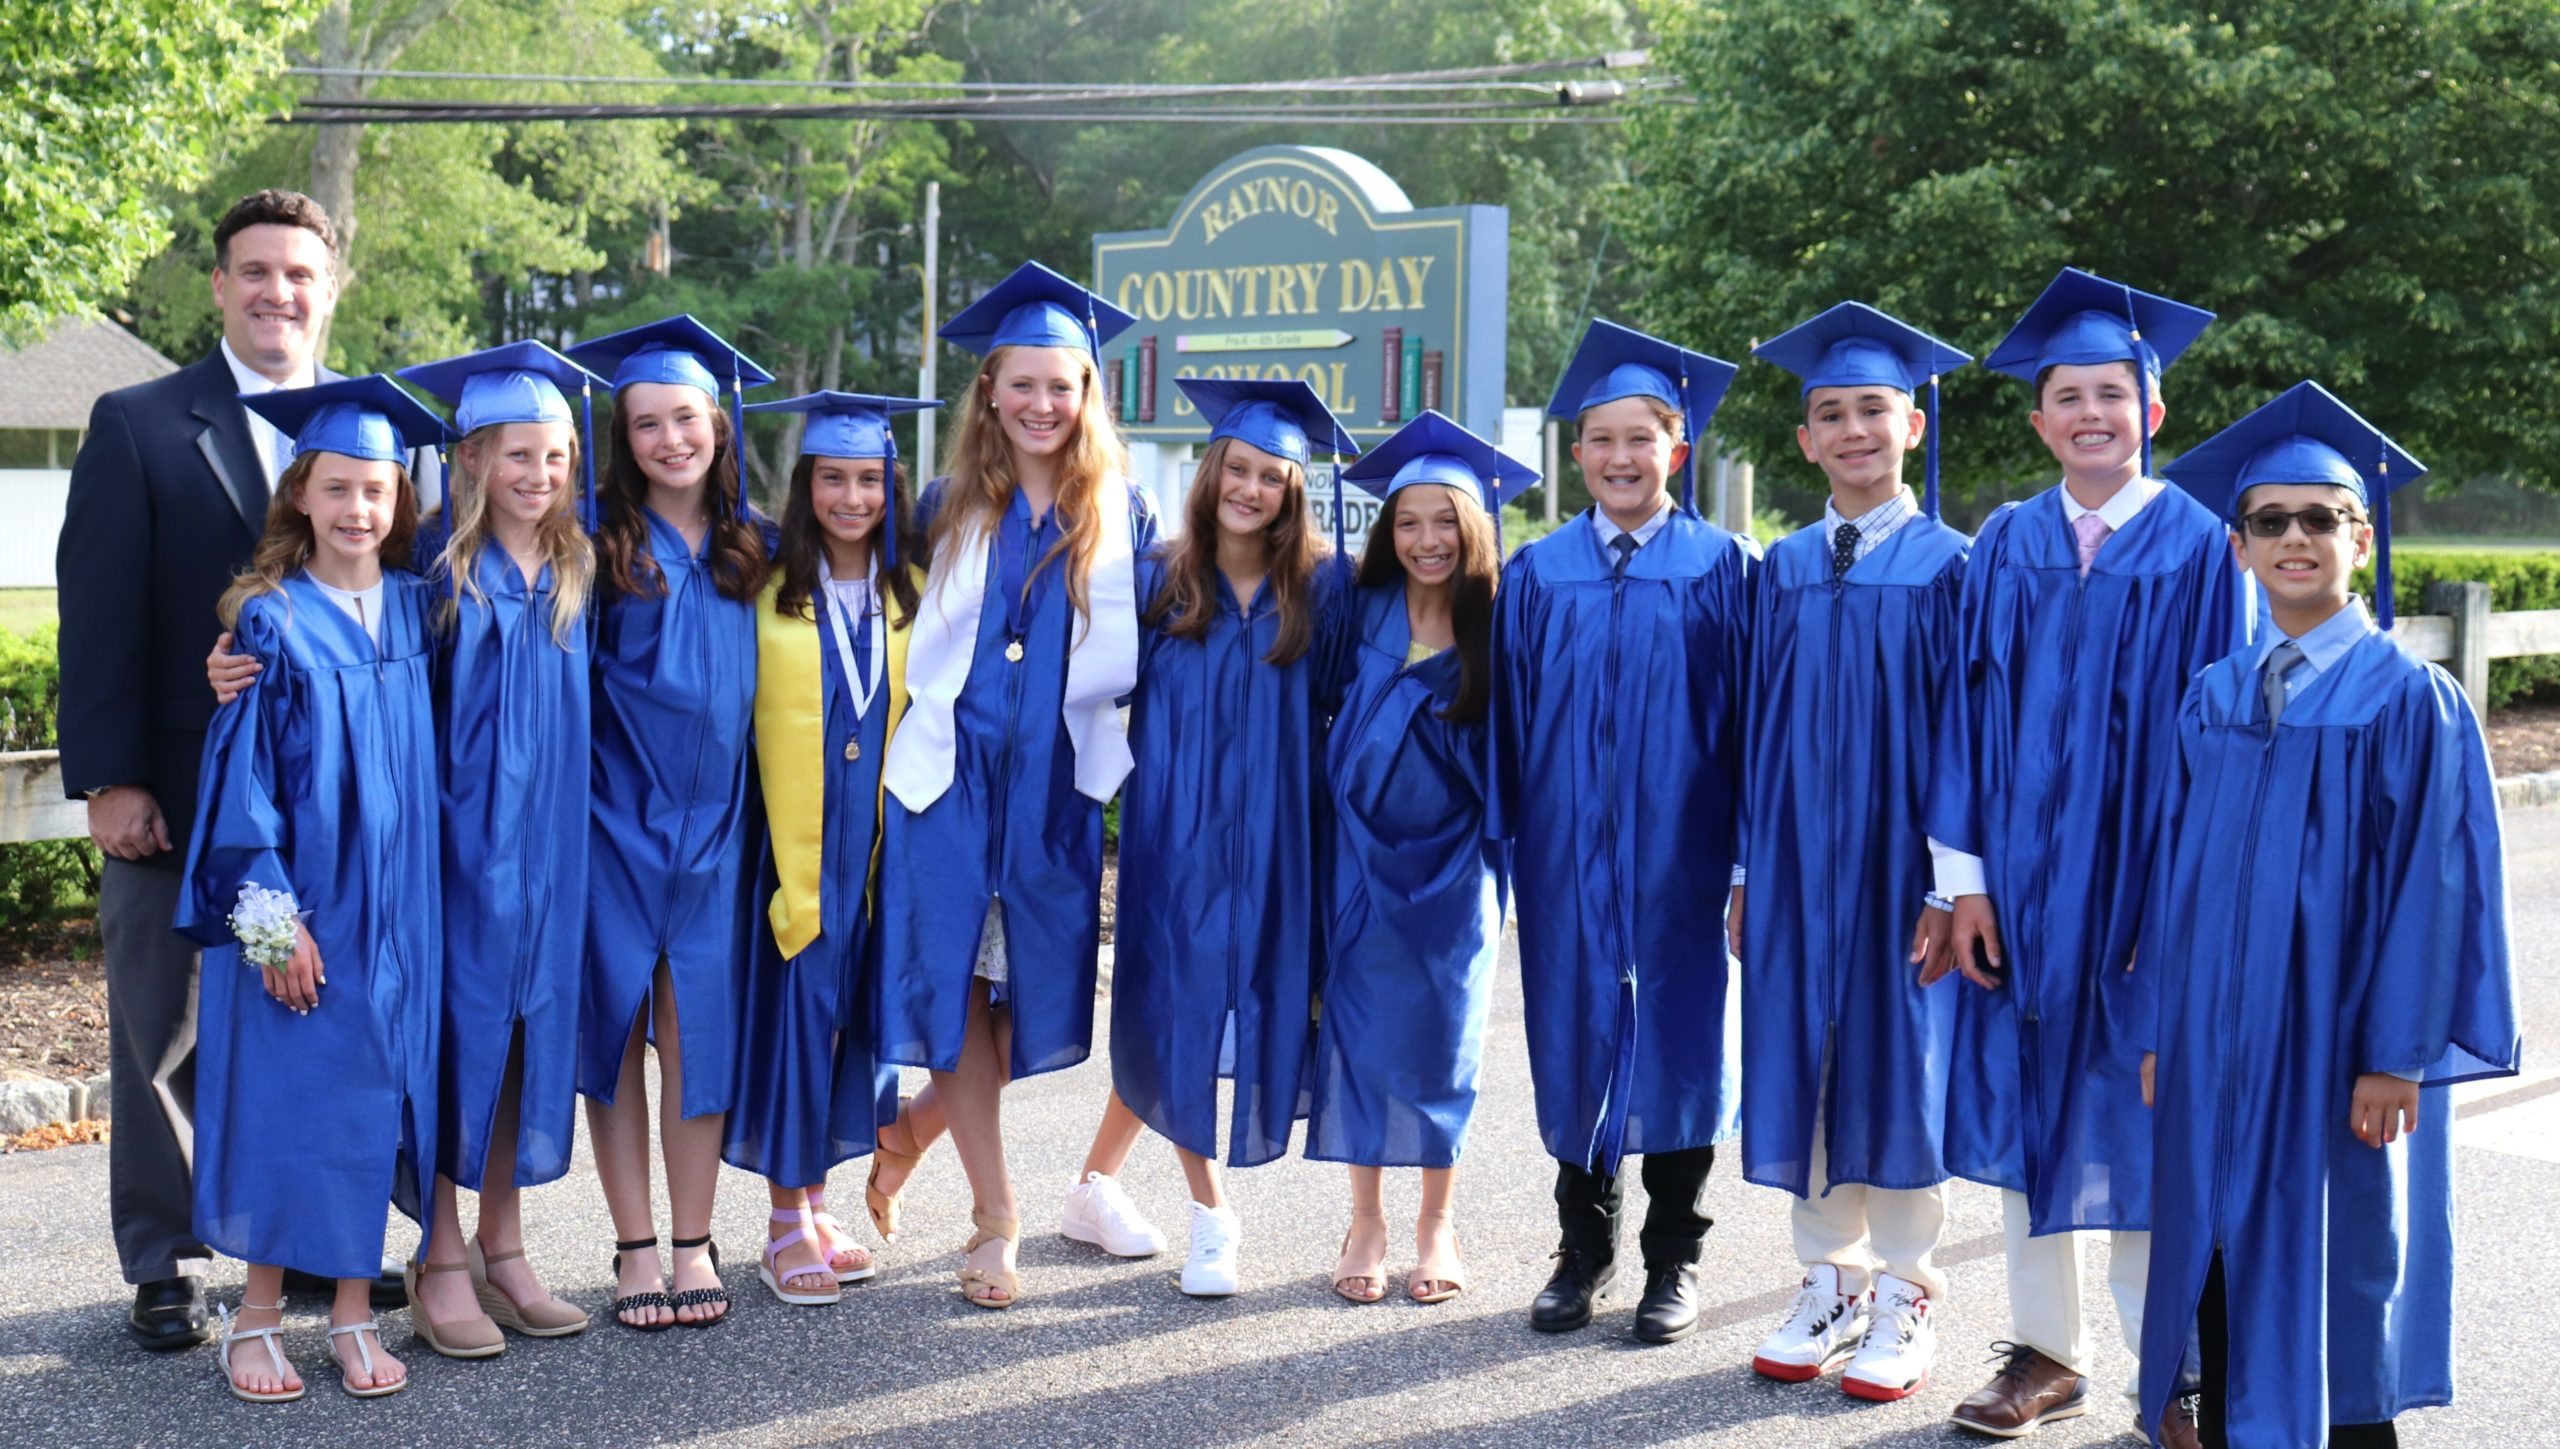 The Raynor Country Day School recently celebrated its sixth-grade graduating class last week.